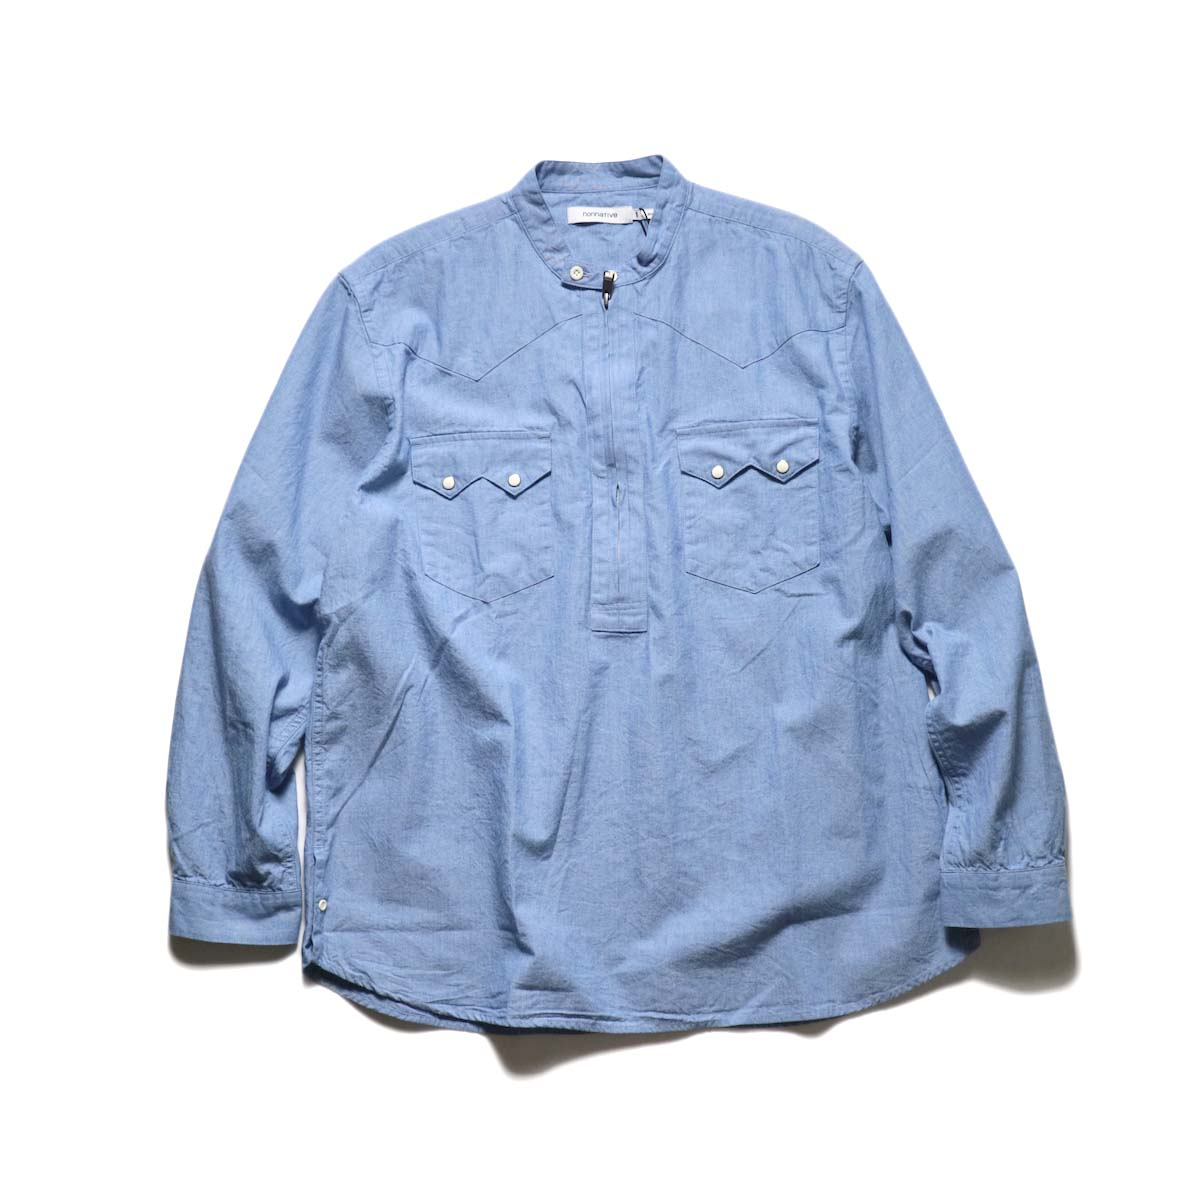 nonnative / RANCHER PULLOVER SHIRT RELAXED FIT COTTON 5oz CHAMBRAY (Sax)正面